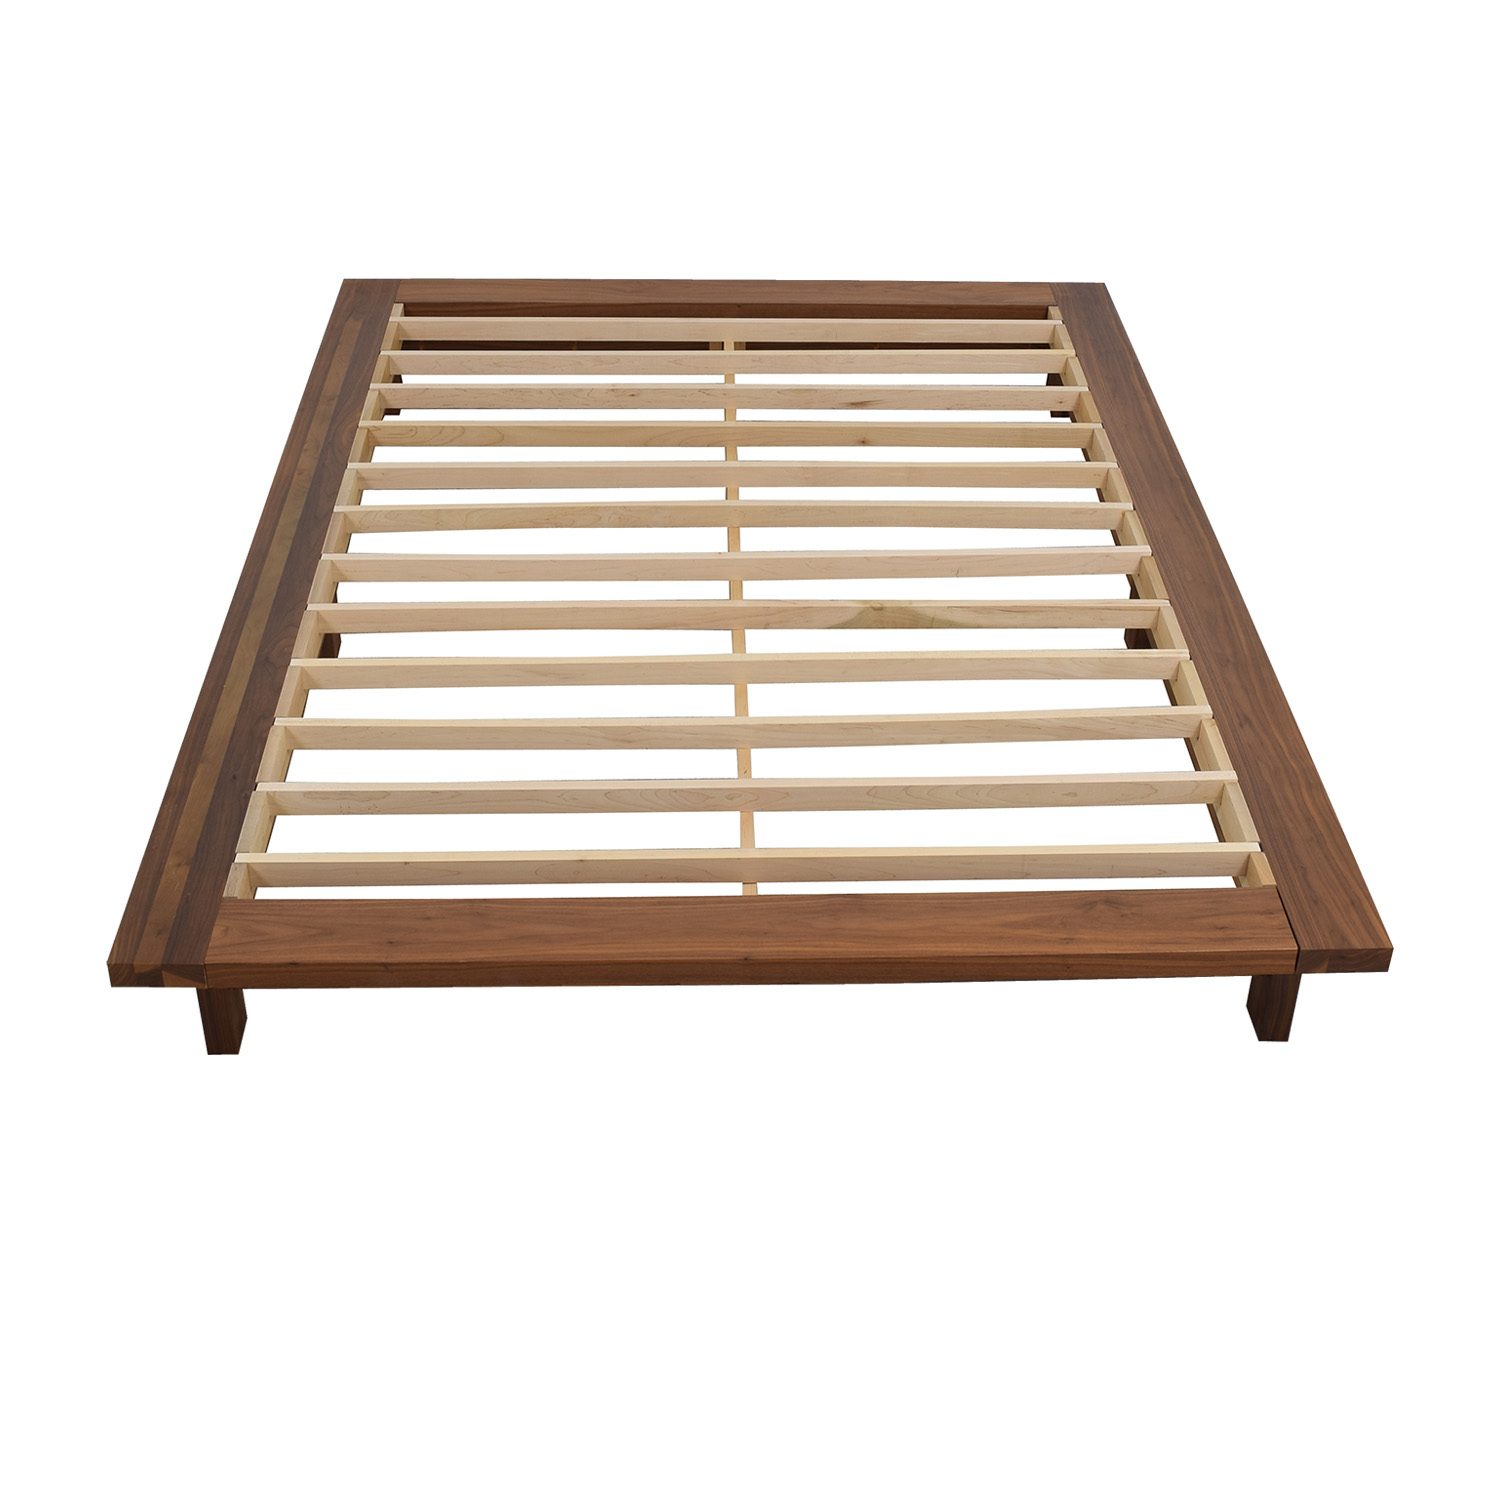 Room & Board Room & Board Campo Queen Walnut Platform Bed Frame second hand